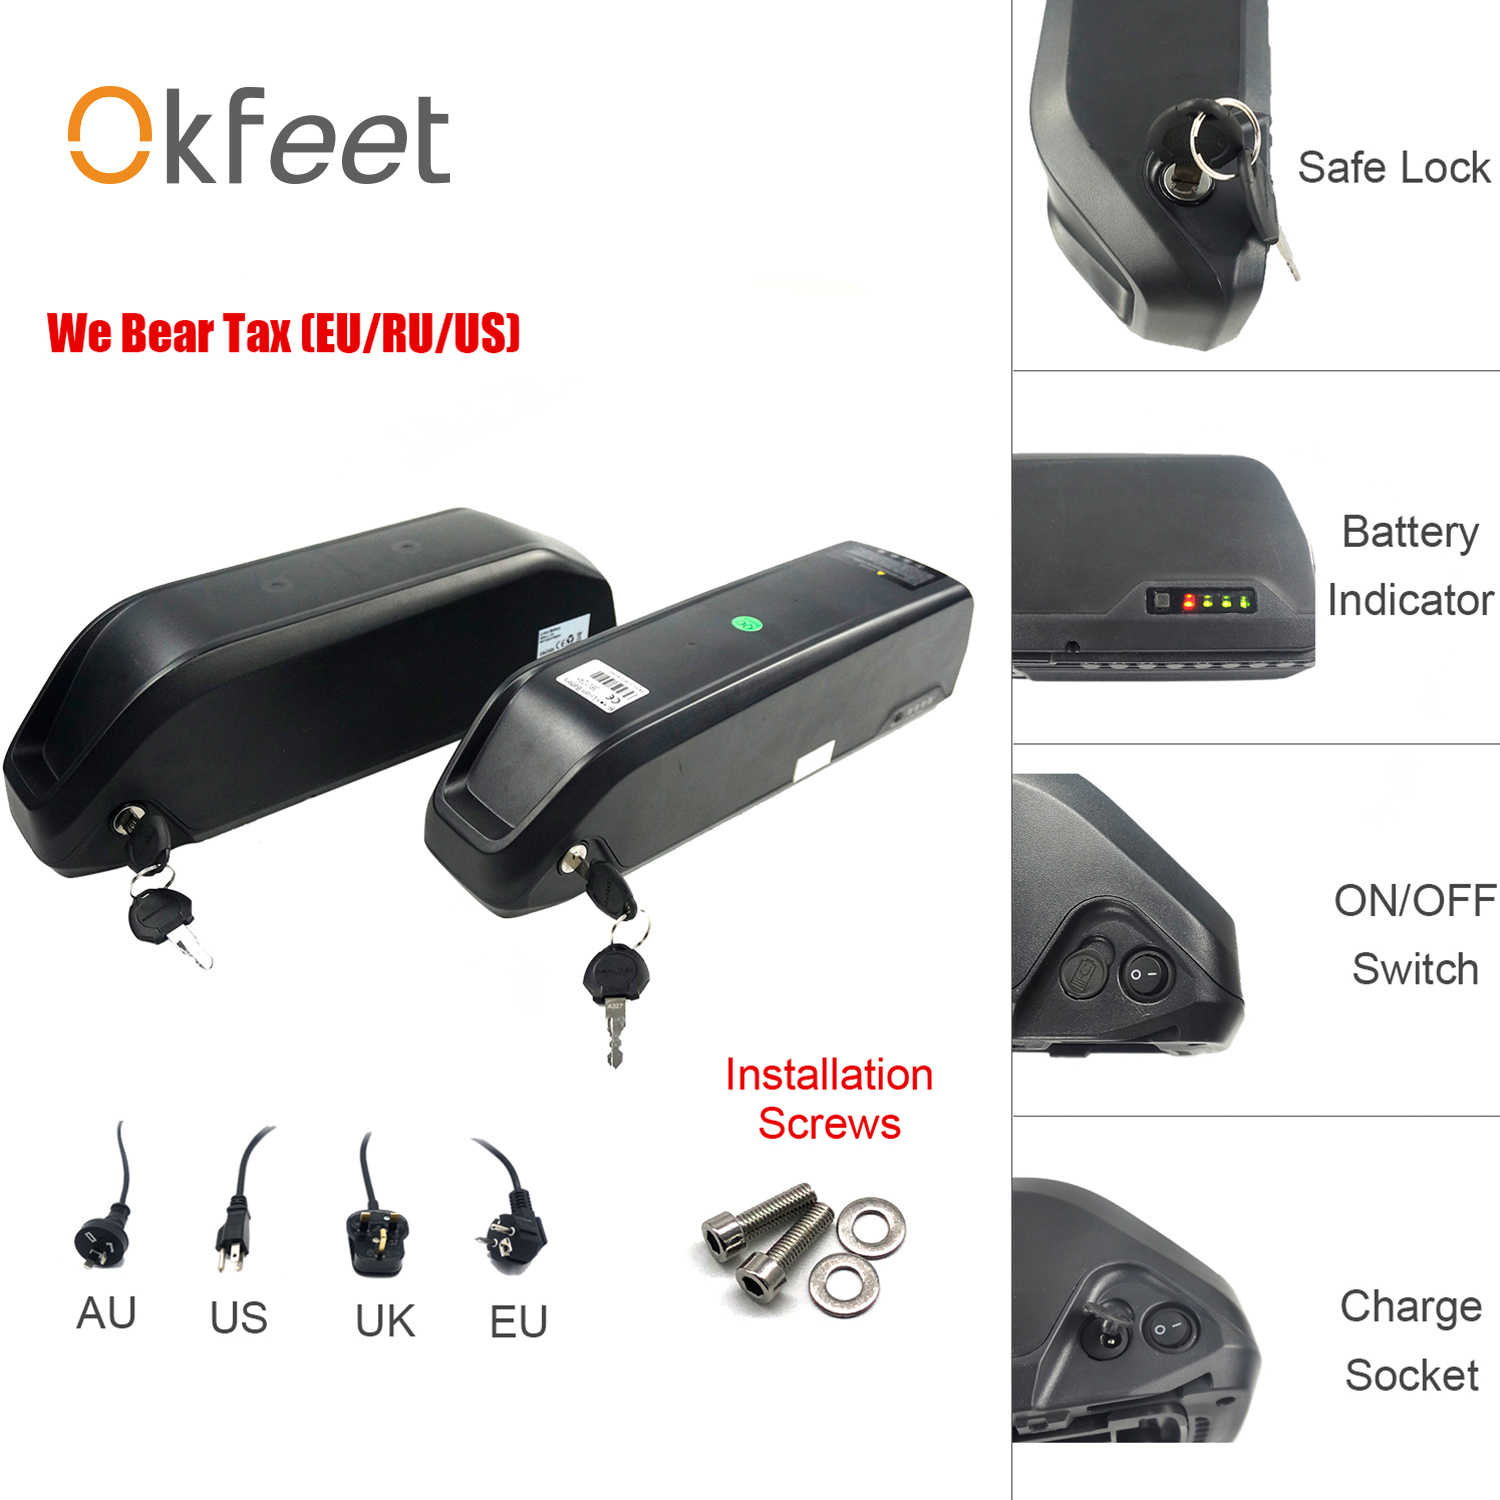 Okfeet Bafang Battery 36V 48V DP-5C DP-6C Battery Polly 48V 12Ah 13Ah 16Ah Ebike Cycling Lithium Battery With  Charger